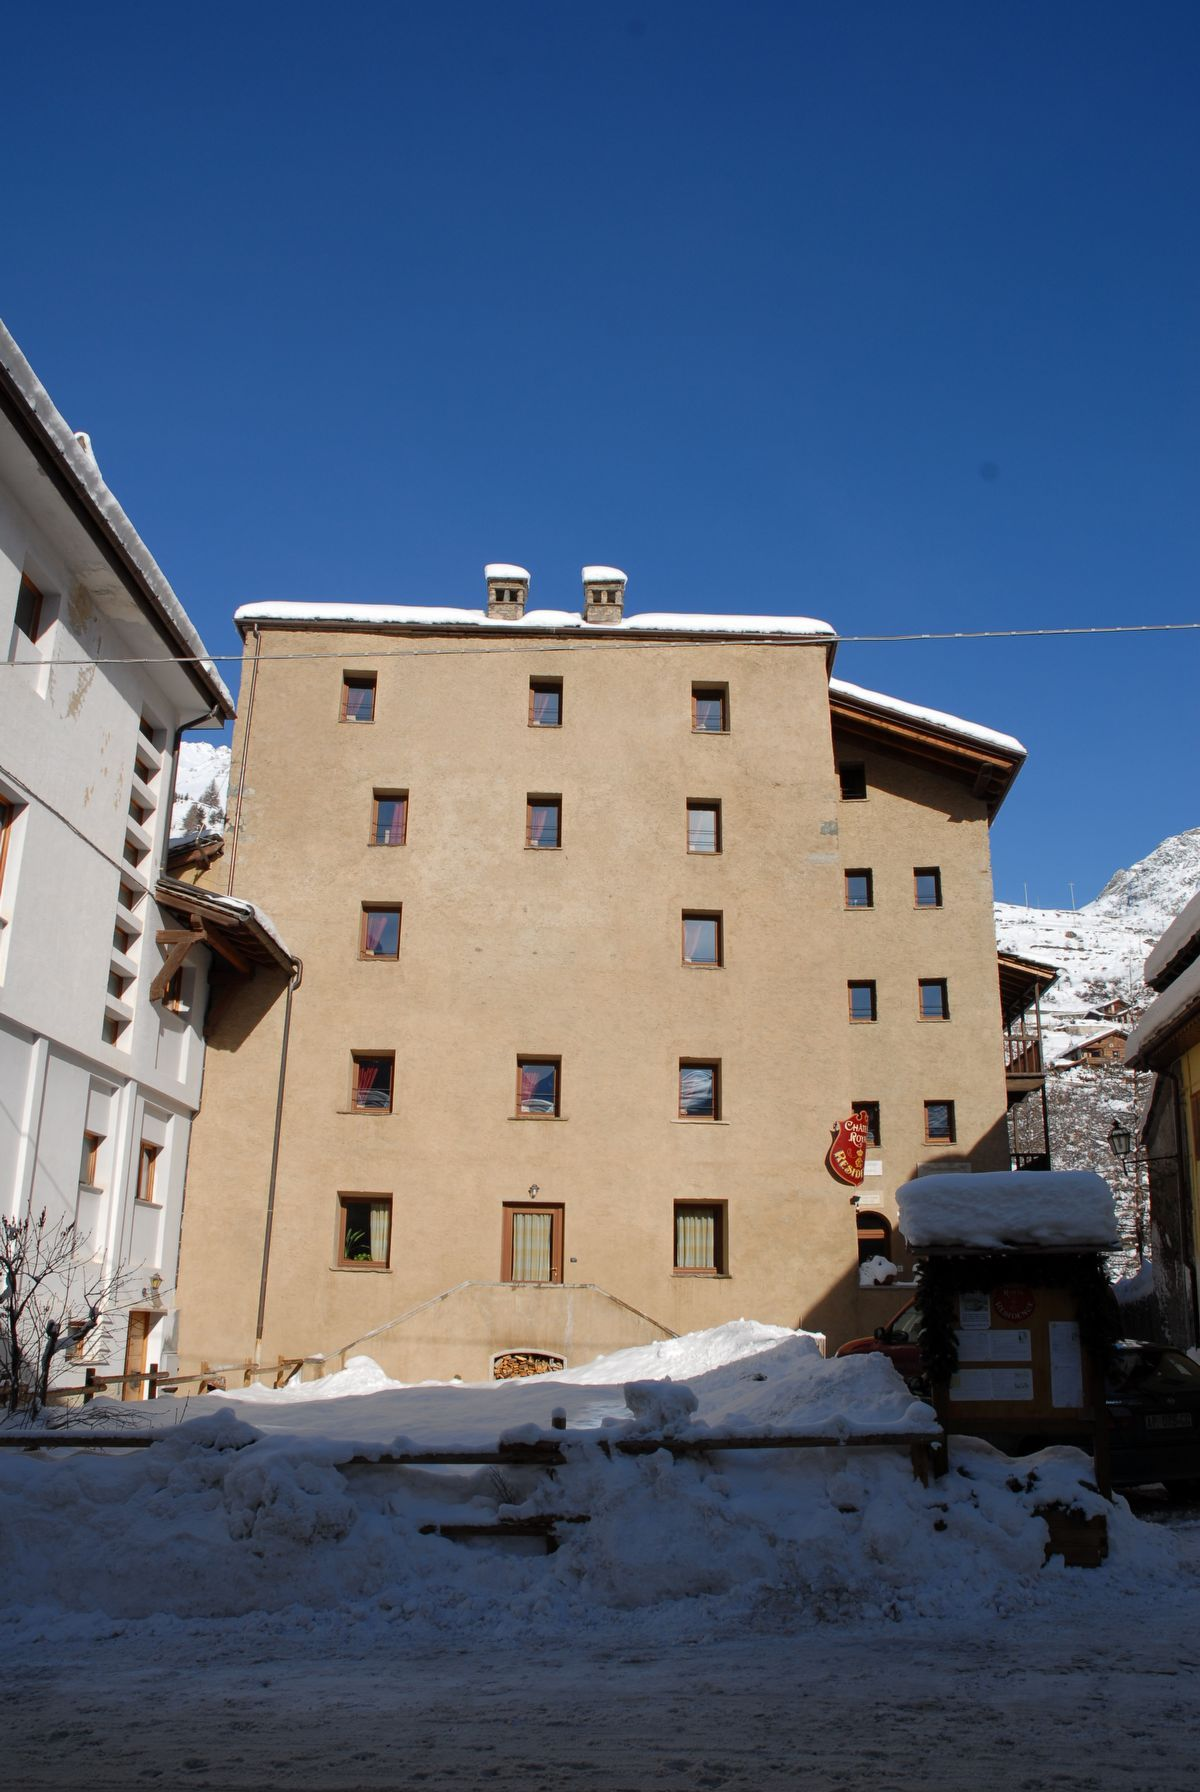 Residence Chateau Royal in Cogne in winter